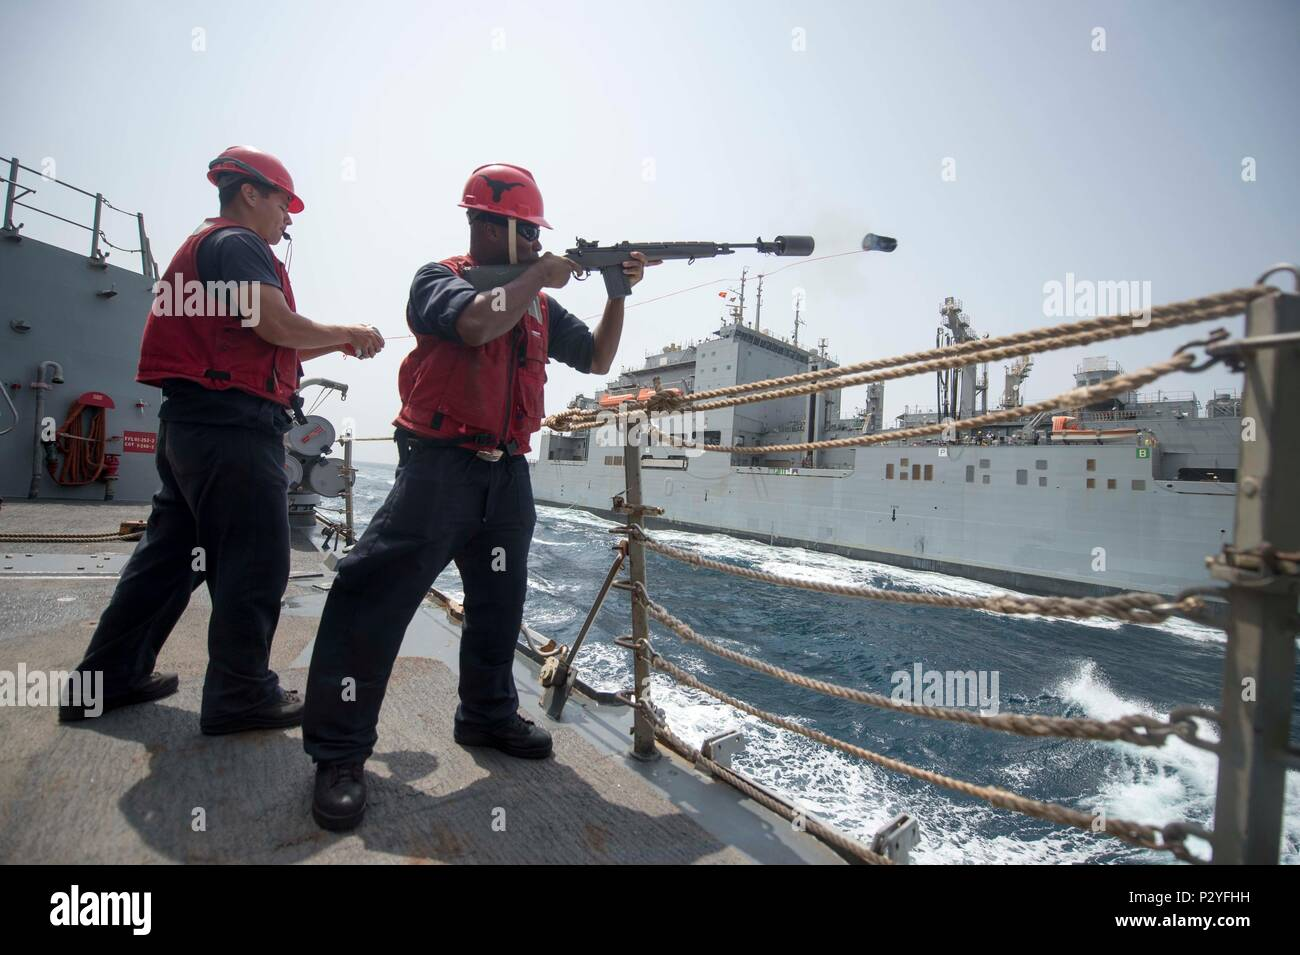 160808-N-DQ503-010    GULF OF ADEN (Aug. 8, 2016) Gunner's Mate 2nd Class Allen Marshall fires a shot line from the guided-missile destroyer USS Roosevelt (DDG 80) to the dry cargo/ammunition ship USNS Cesar Chavez (T-AKE 14). Roosevelt, deployed as part of the Eisenhower Carrier Strike Group, is supporting maritime security operations and theater security cooperation efforts in the U.S. 5th Fleet area of operations. (U.S. Navy photo by Mass Communication Specialist 3rd Class Taylor A. Elberg/Released) - Stock Image